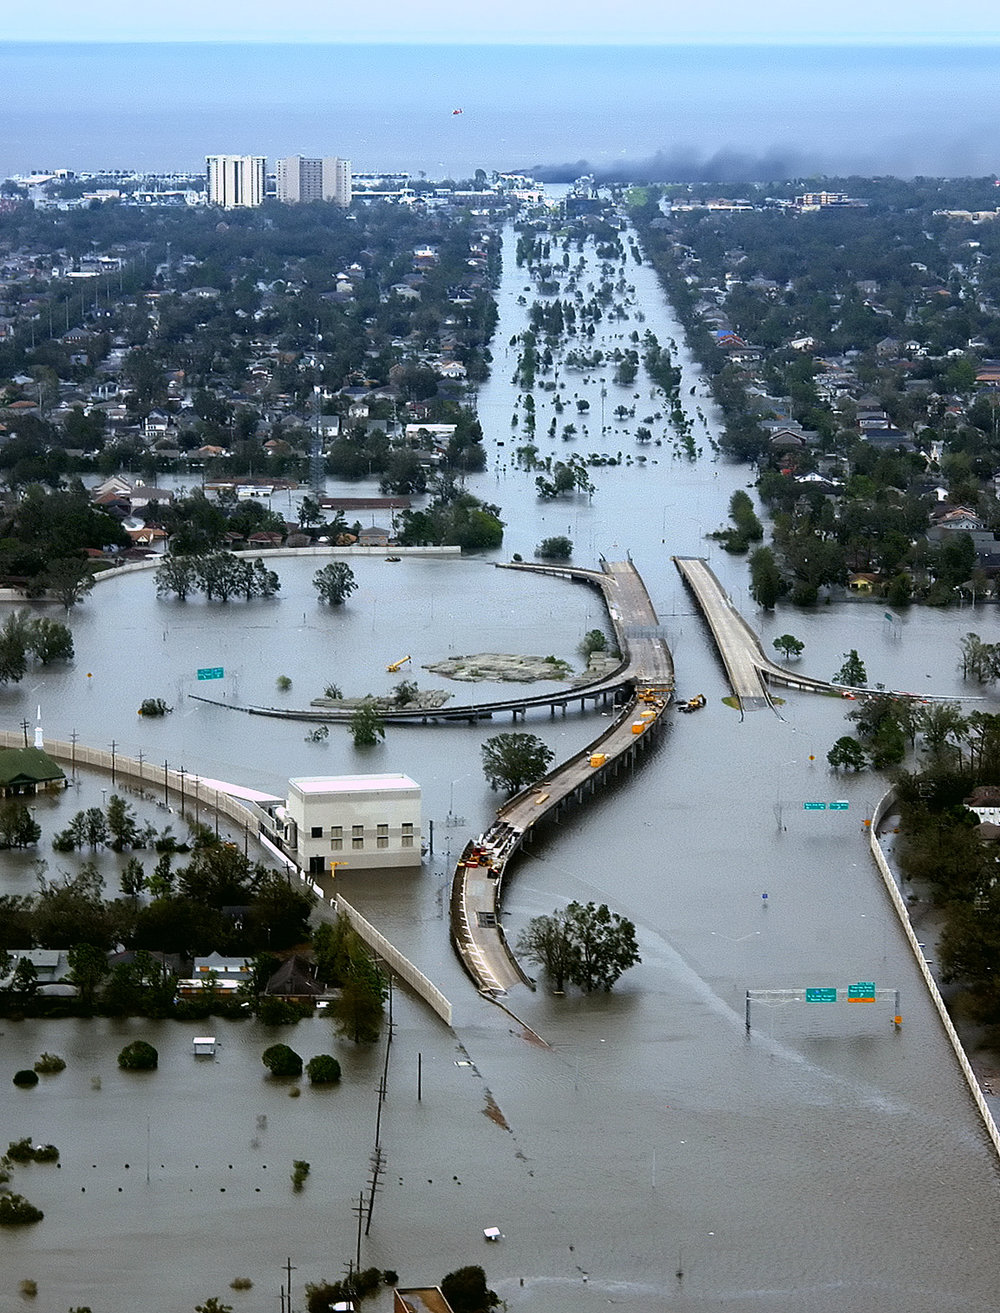 Flooded interchange and surrounding area of northwest New Orleans from Hurricane Katrina. [AP]